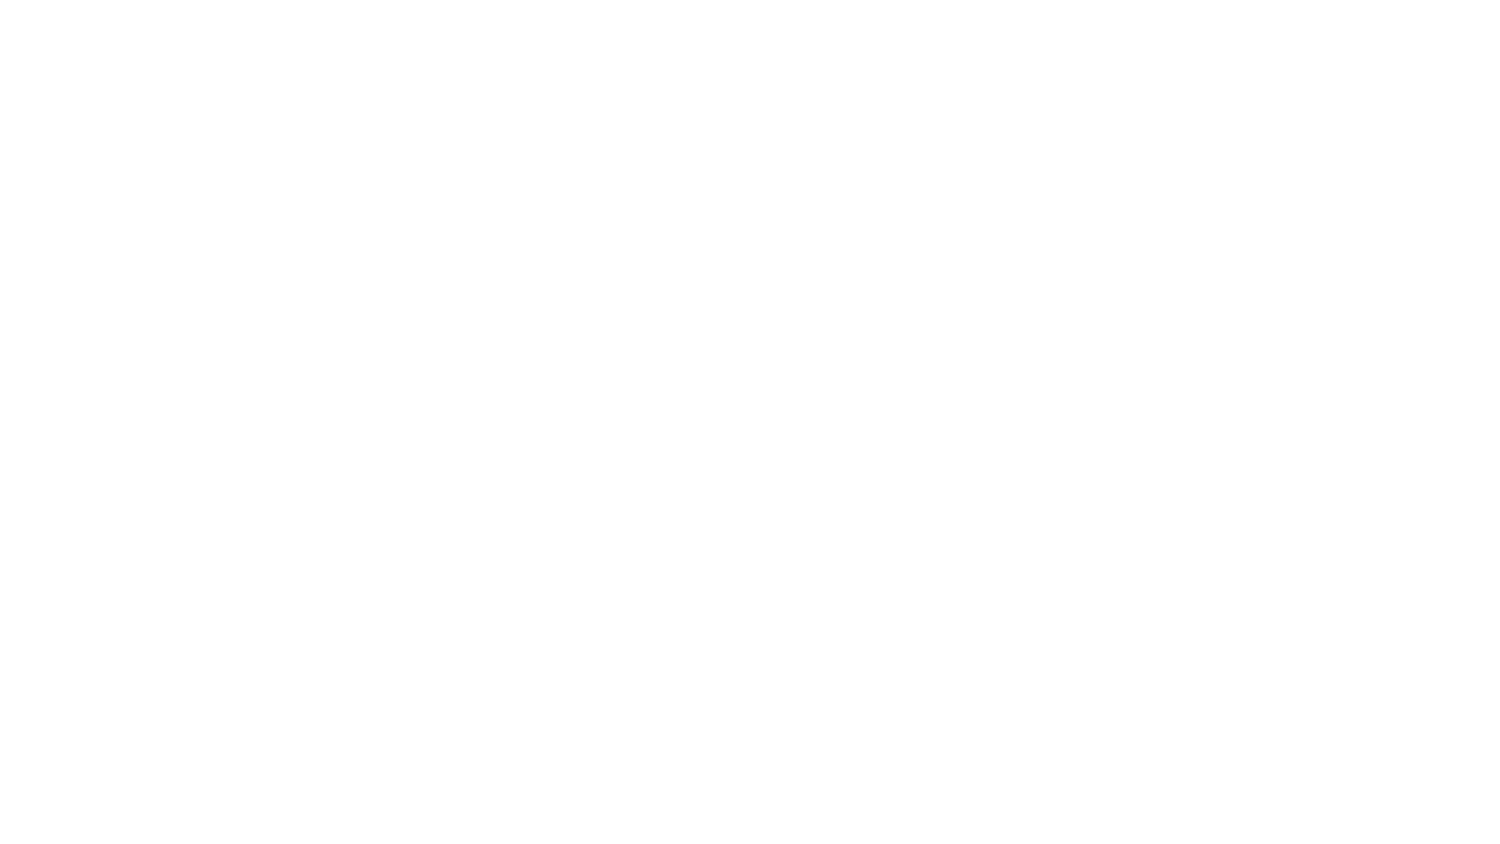 Higher Vision Church